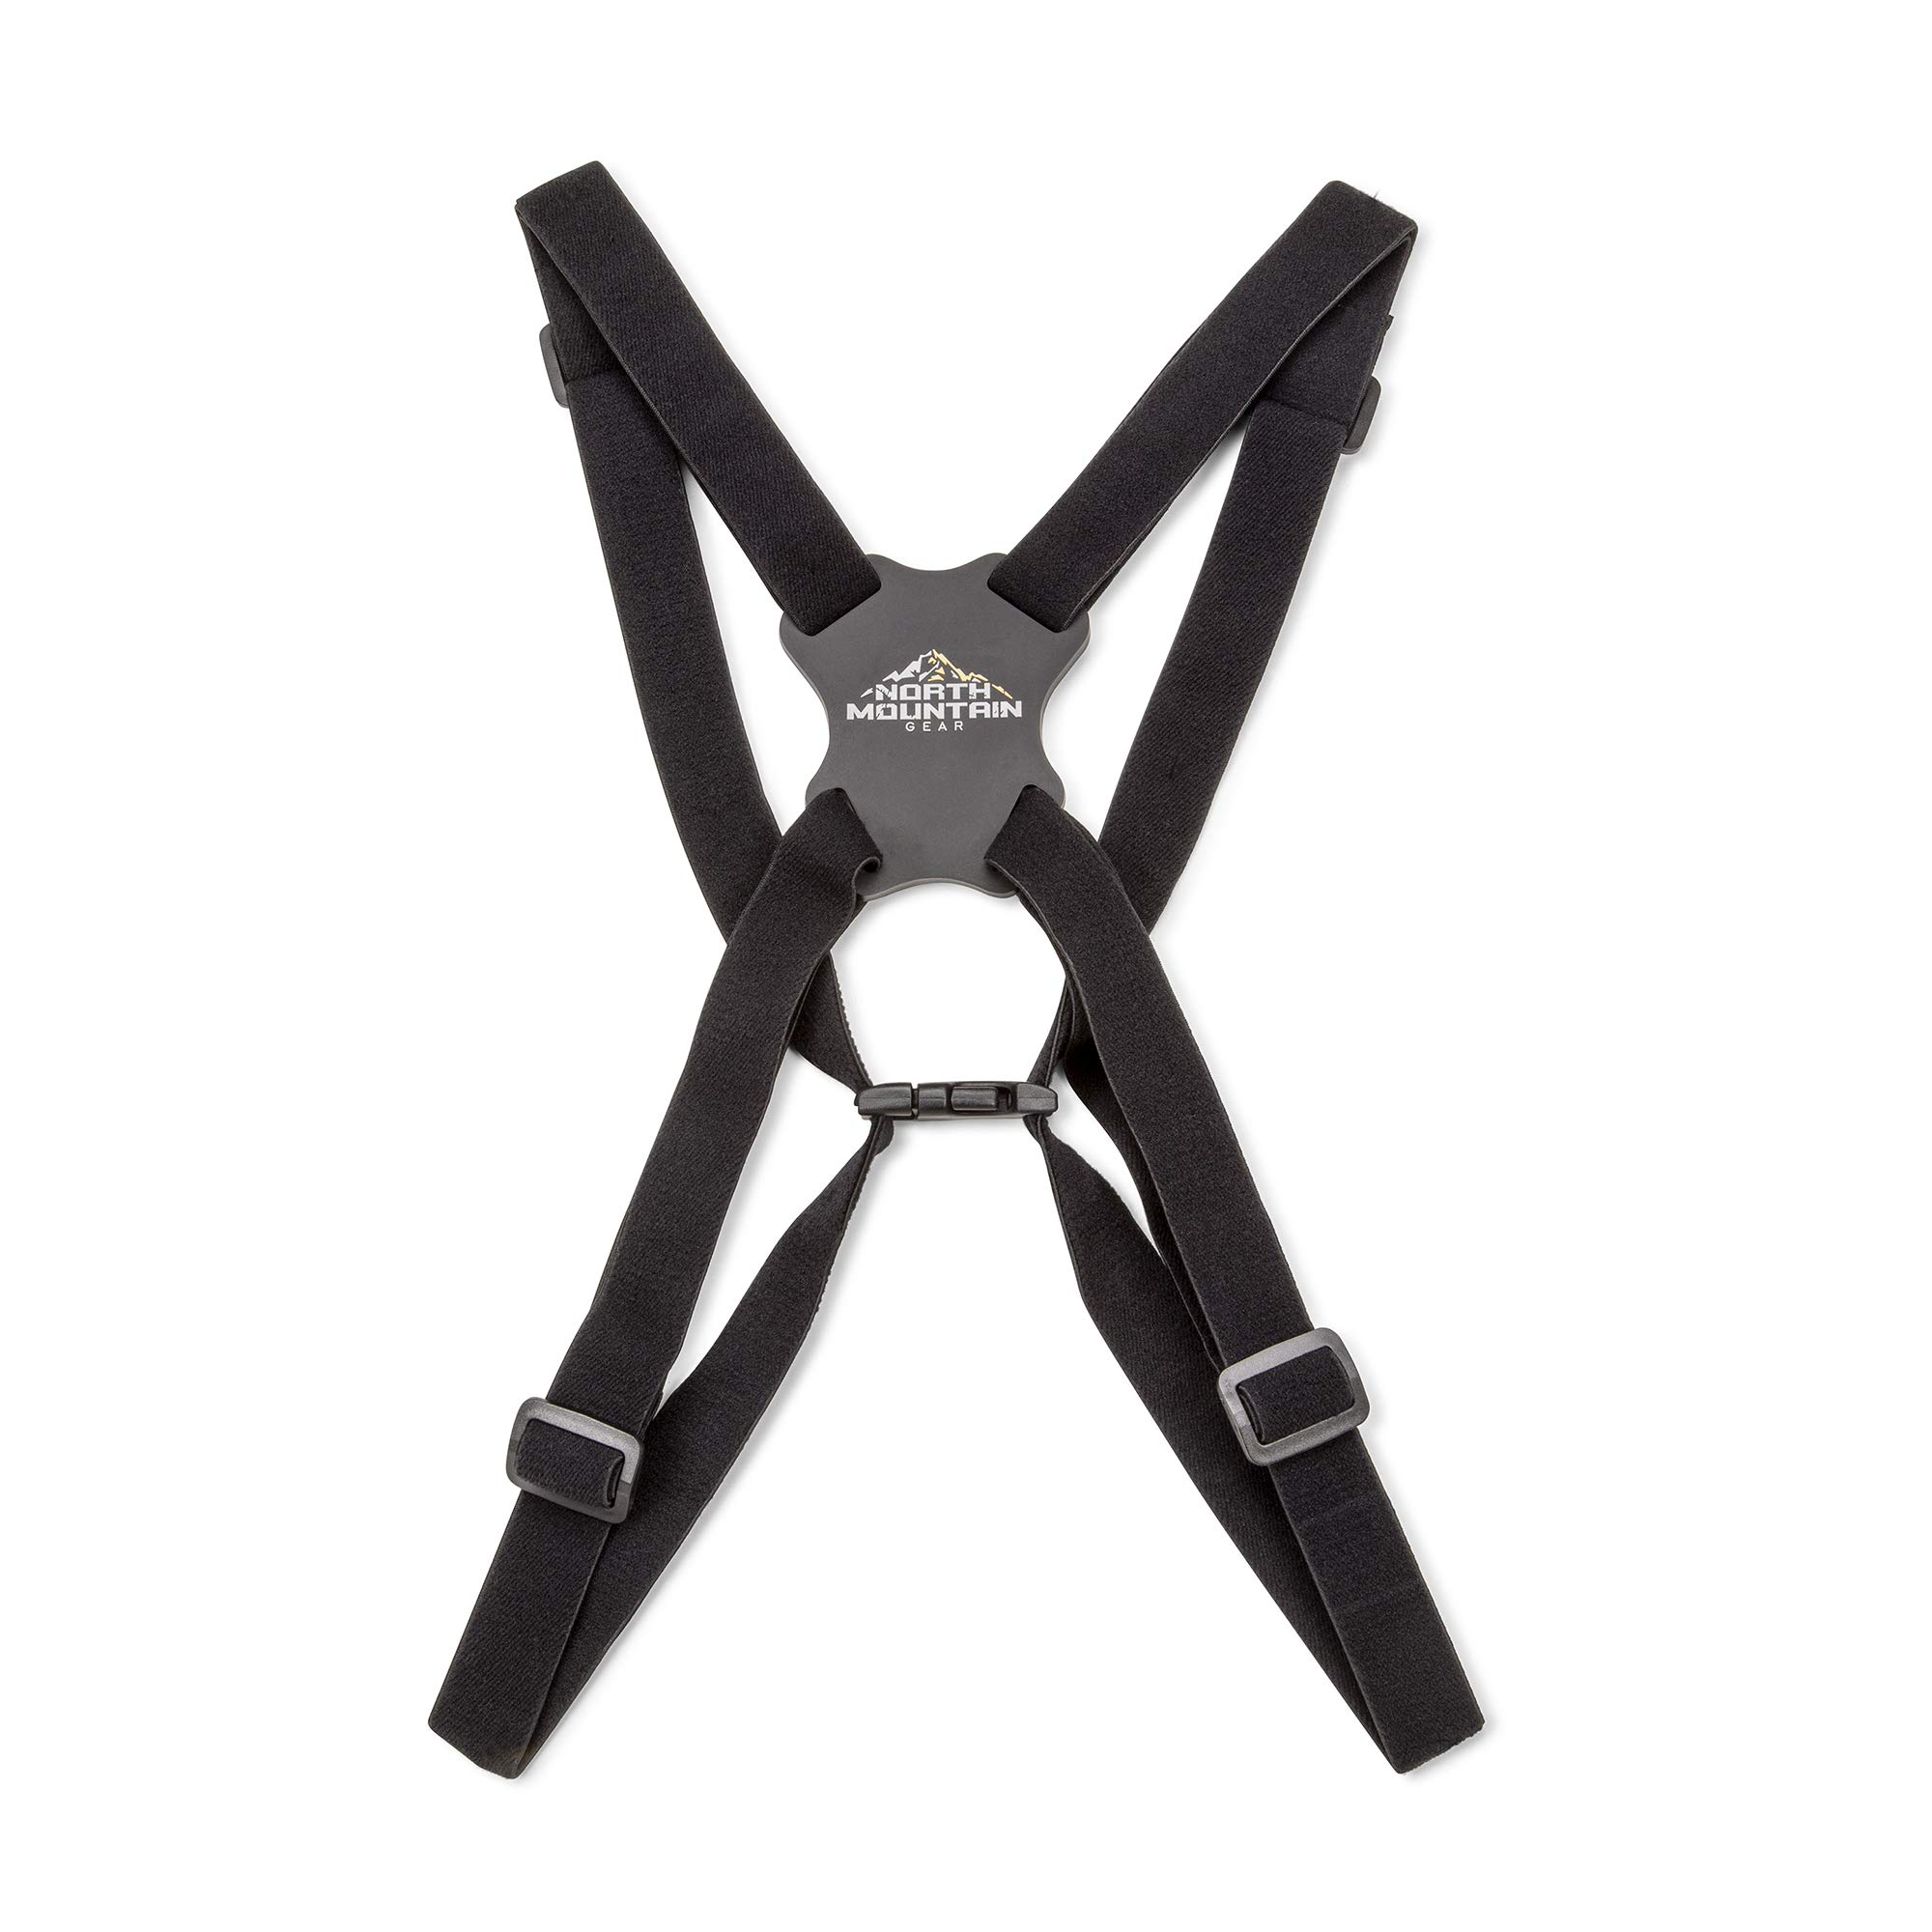 North Mountain Gear Binocular Harness Strap | 4 Way Adjustable with Quick Release Connectors by North Mountain Gear